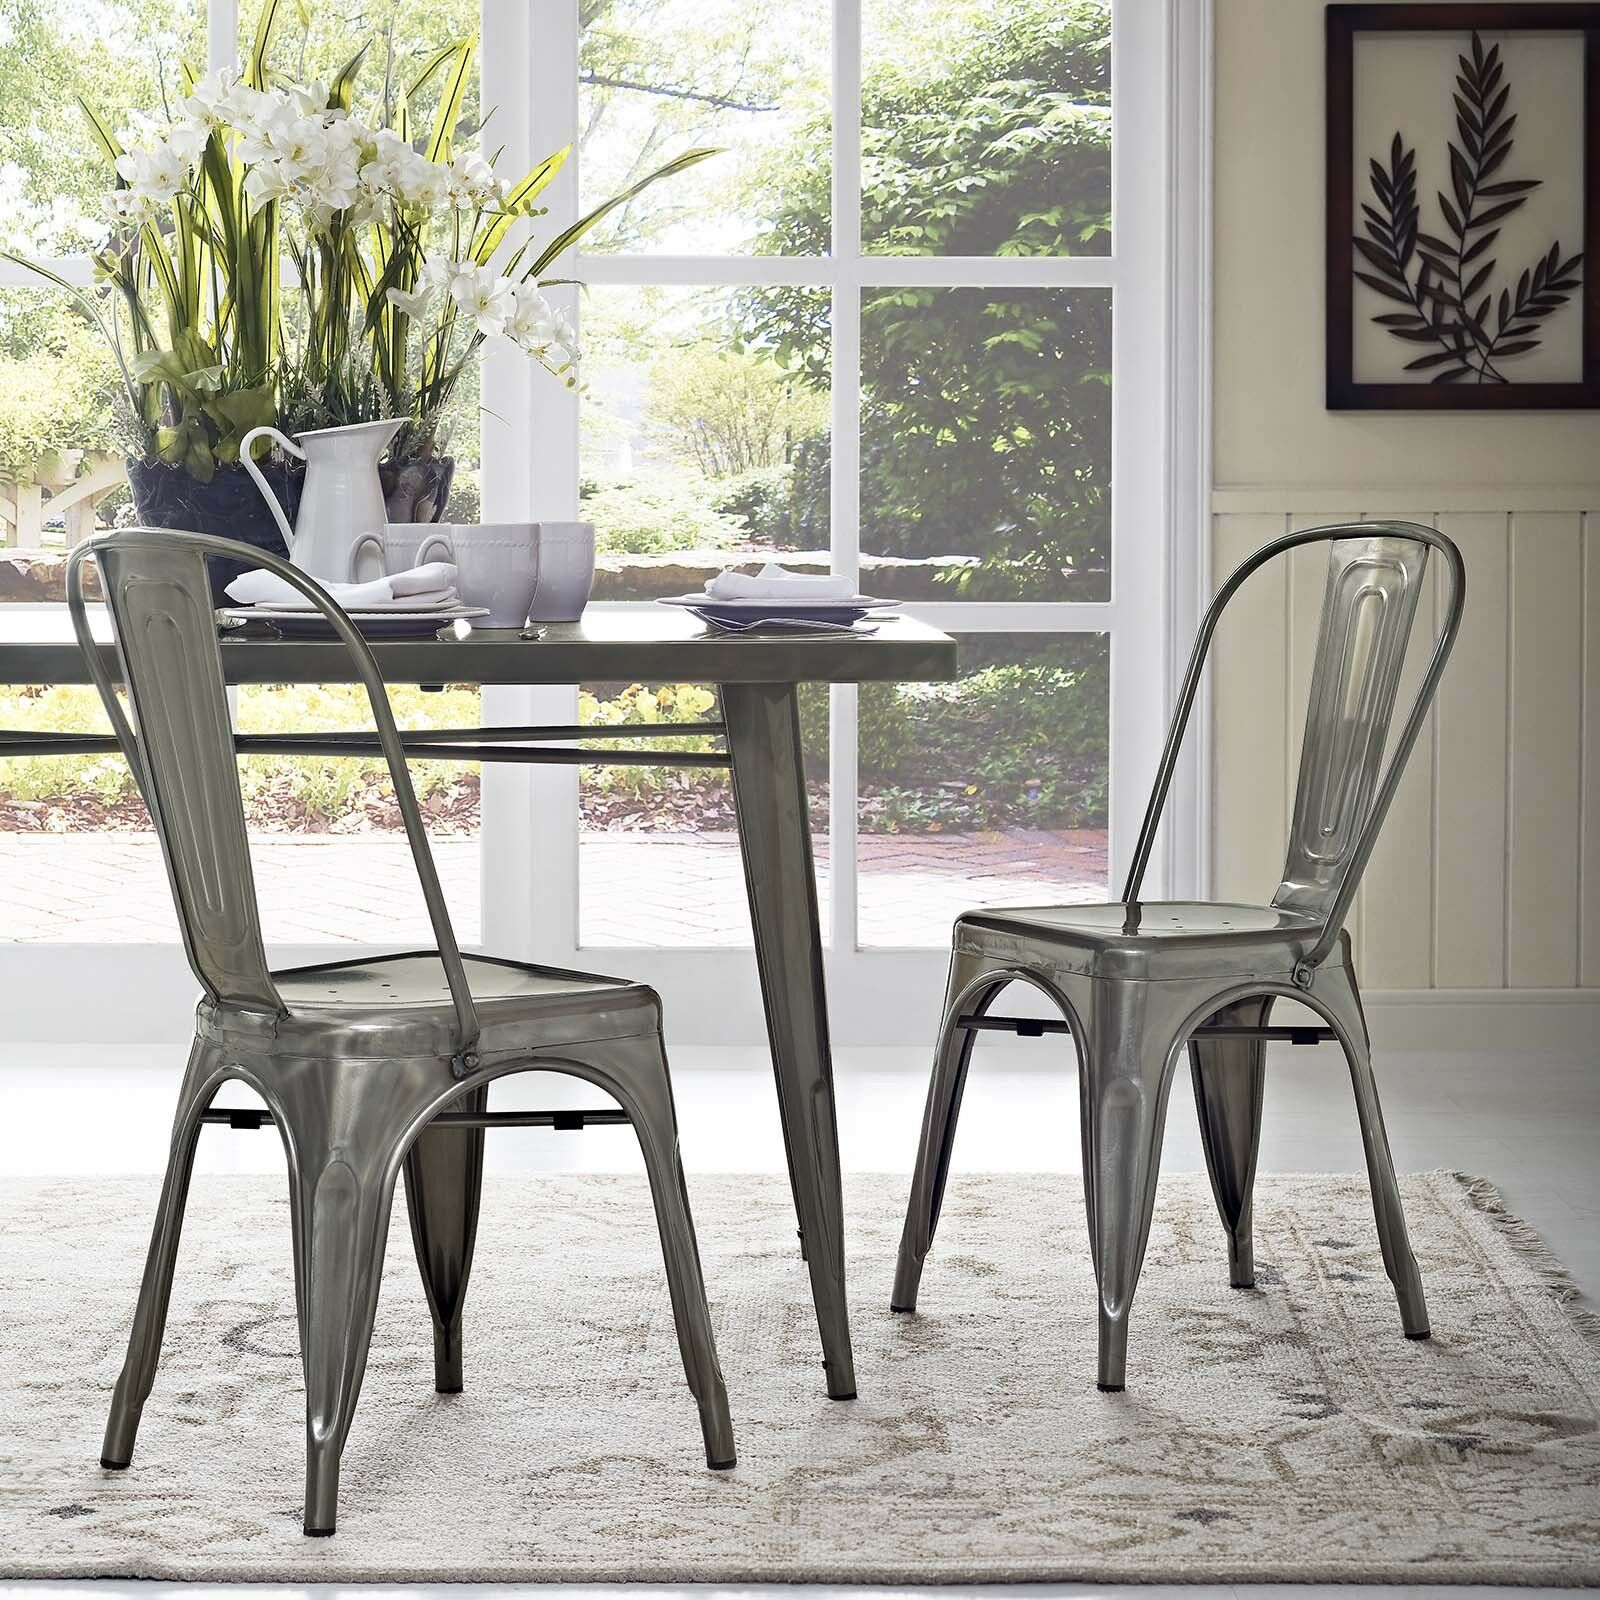 Details About Industrial Modern Tolix Style Gunmetal Aluminum Bistro Dining  Chairs   Set Of 2